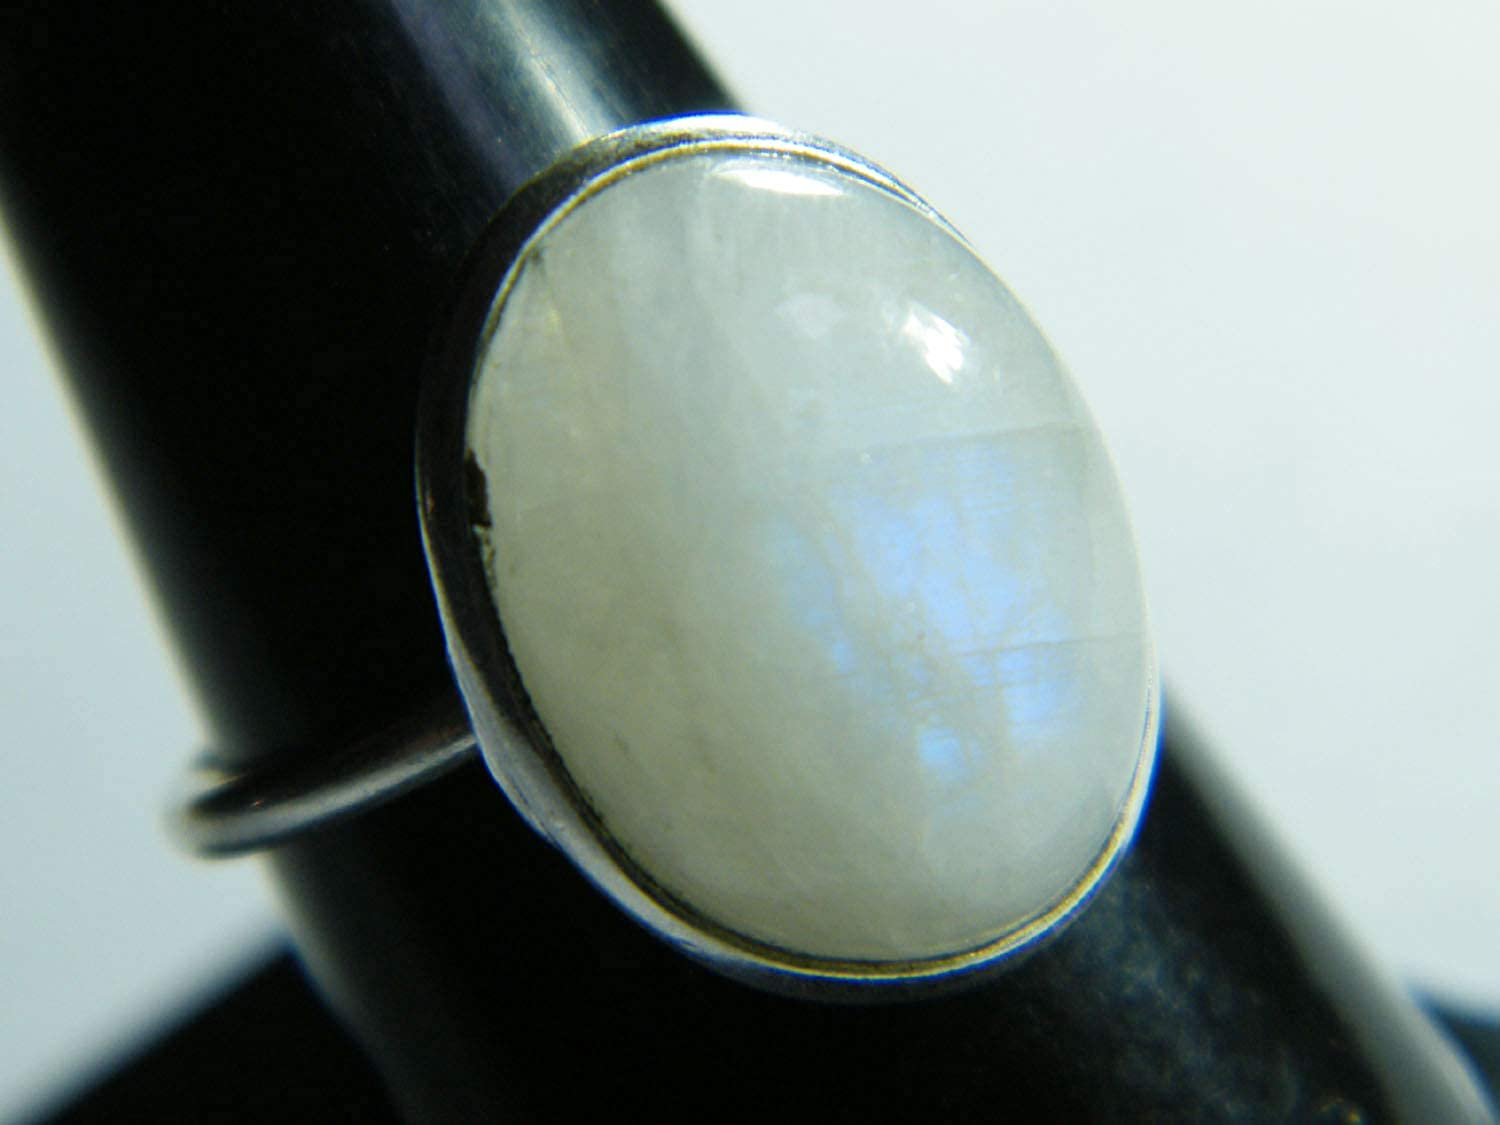 Silver Plated Ring Women Jewelry BRS-4127 Gemstone Ring Thebestjewellery Moonstone Ring Handmade Ring Size- 7.75 USA